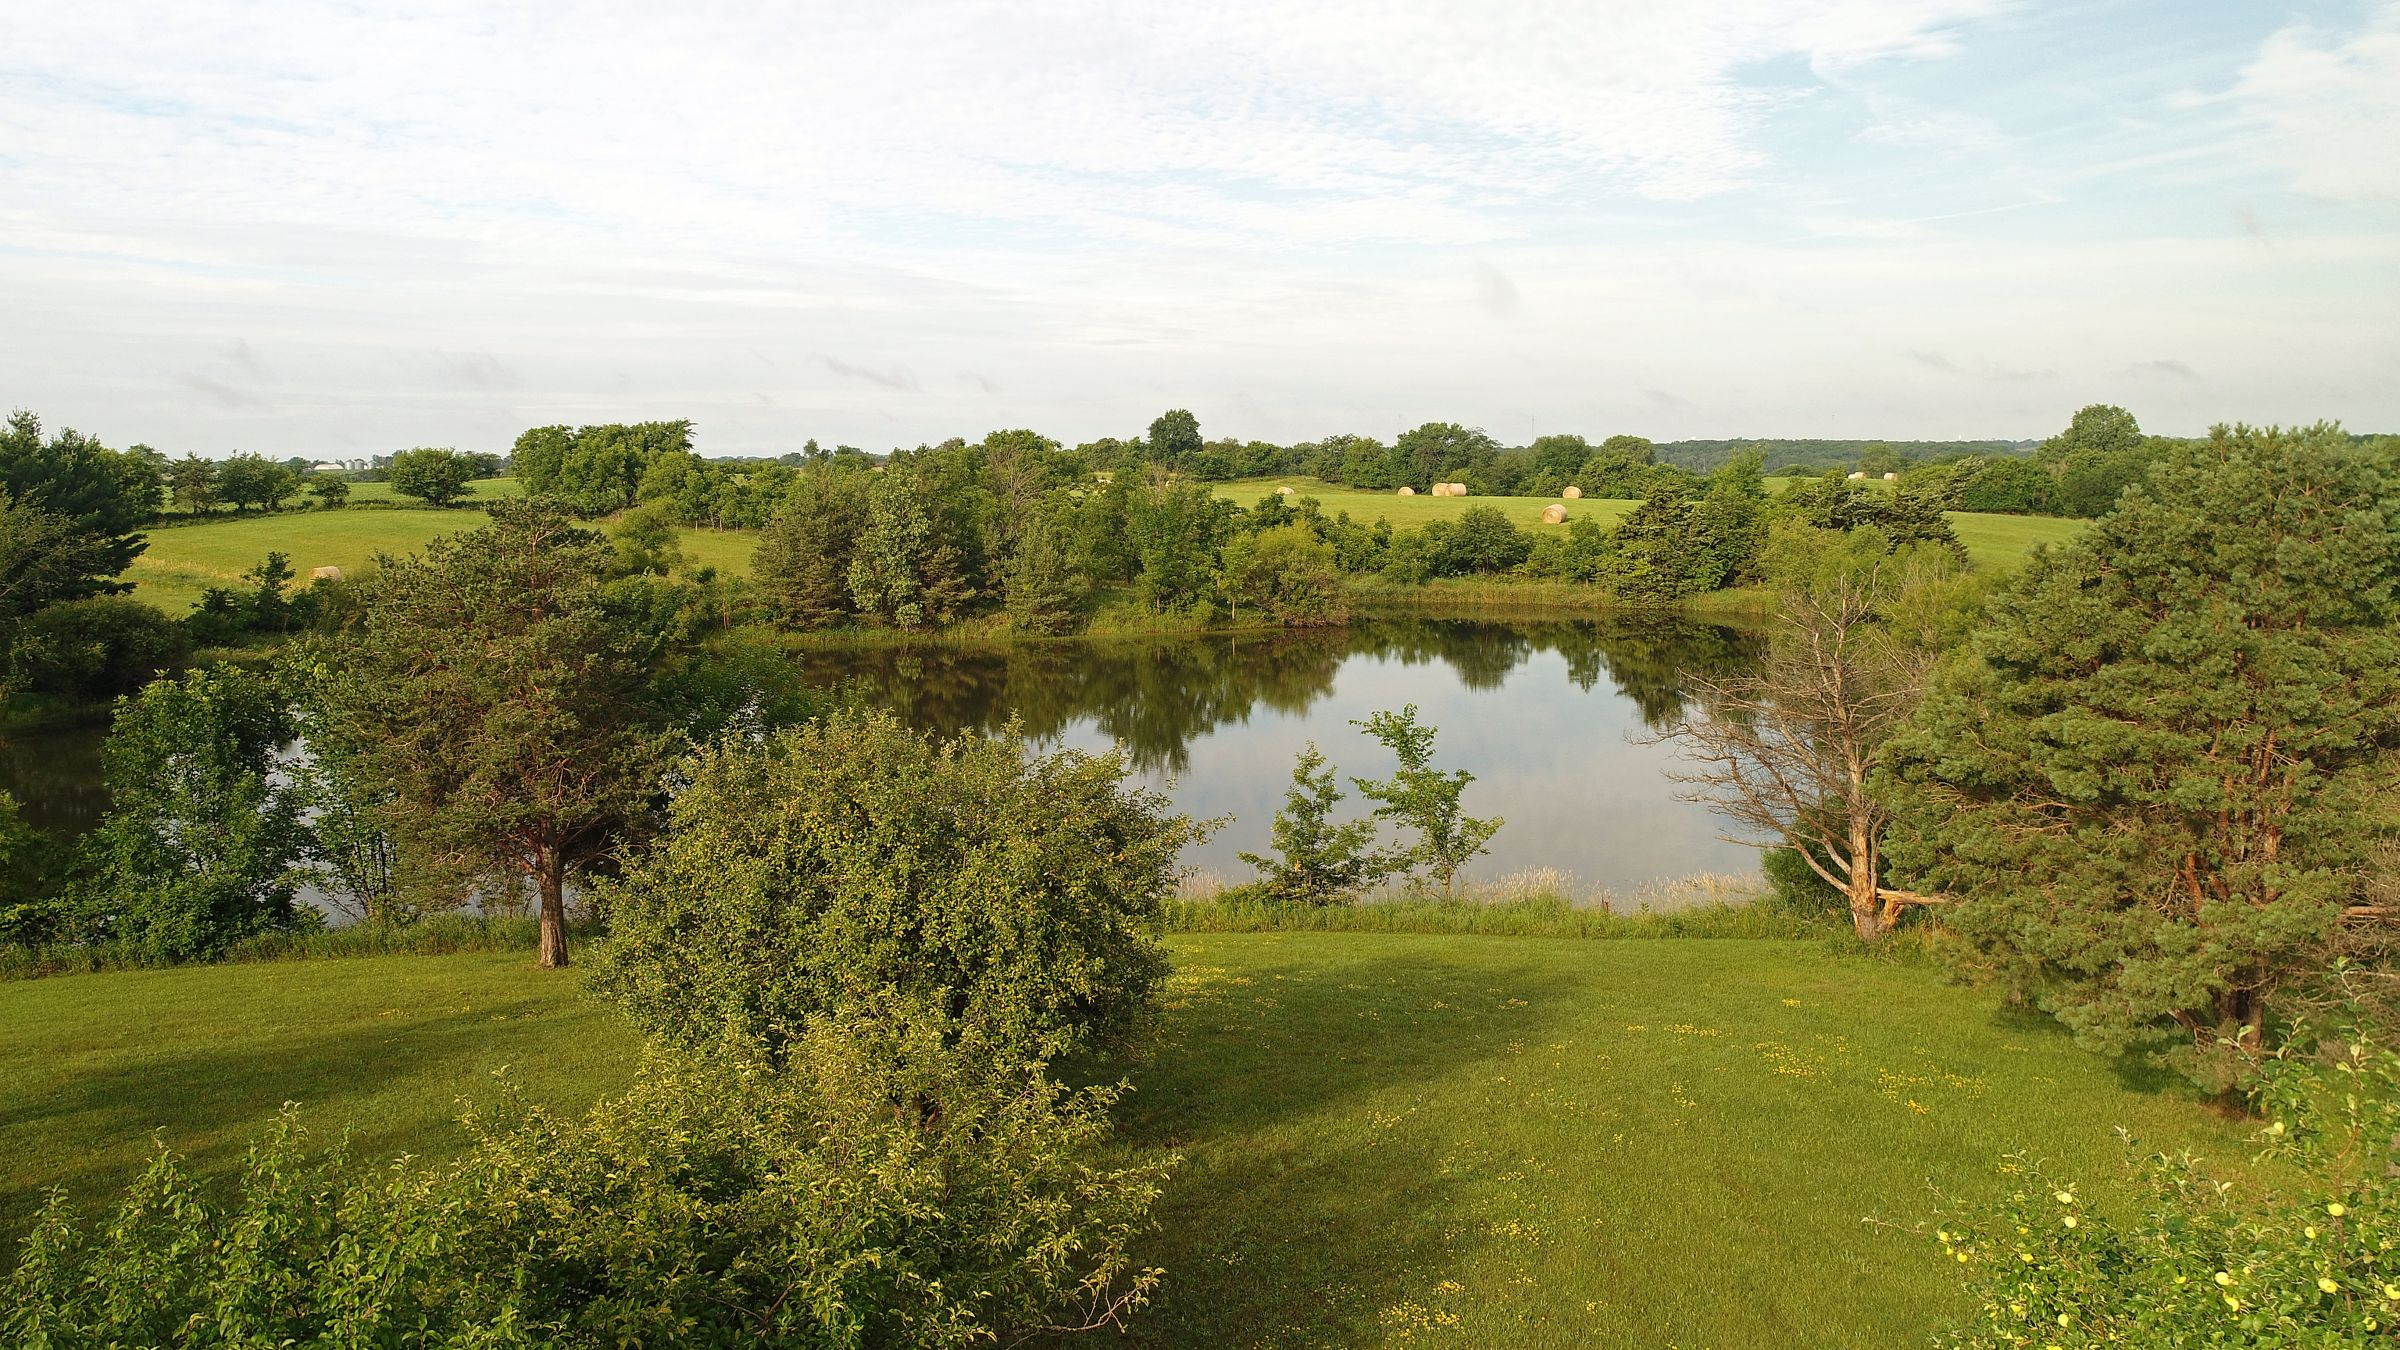 residential-lucas-county-iowa-9-acres-listing-number-15618-5-2021-06-30-170627.JPG